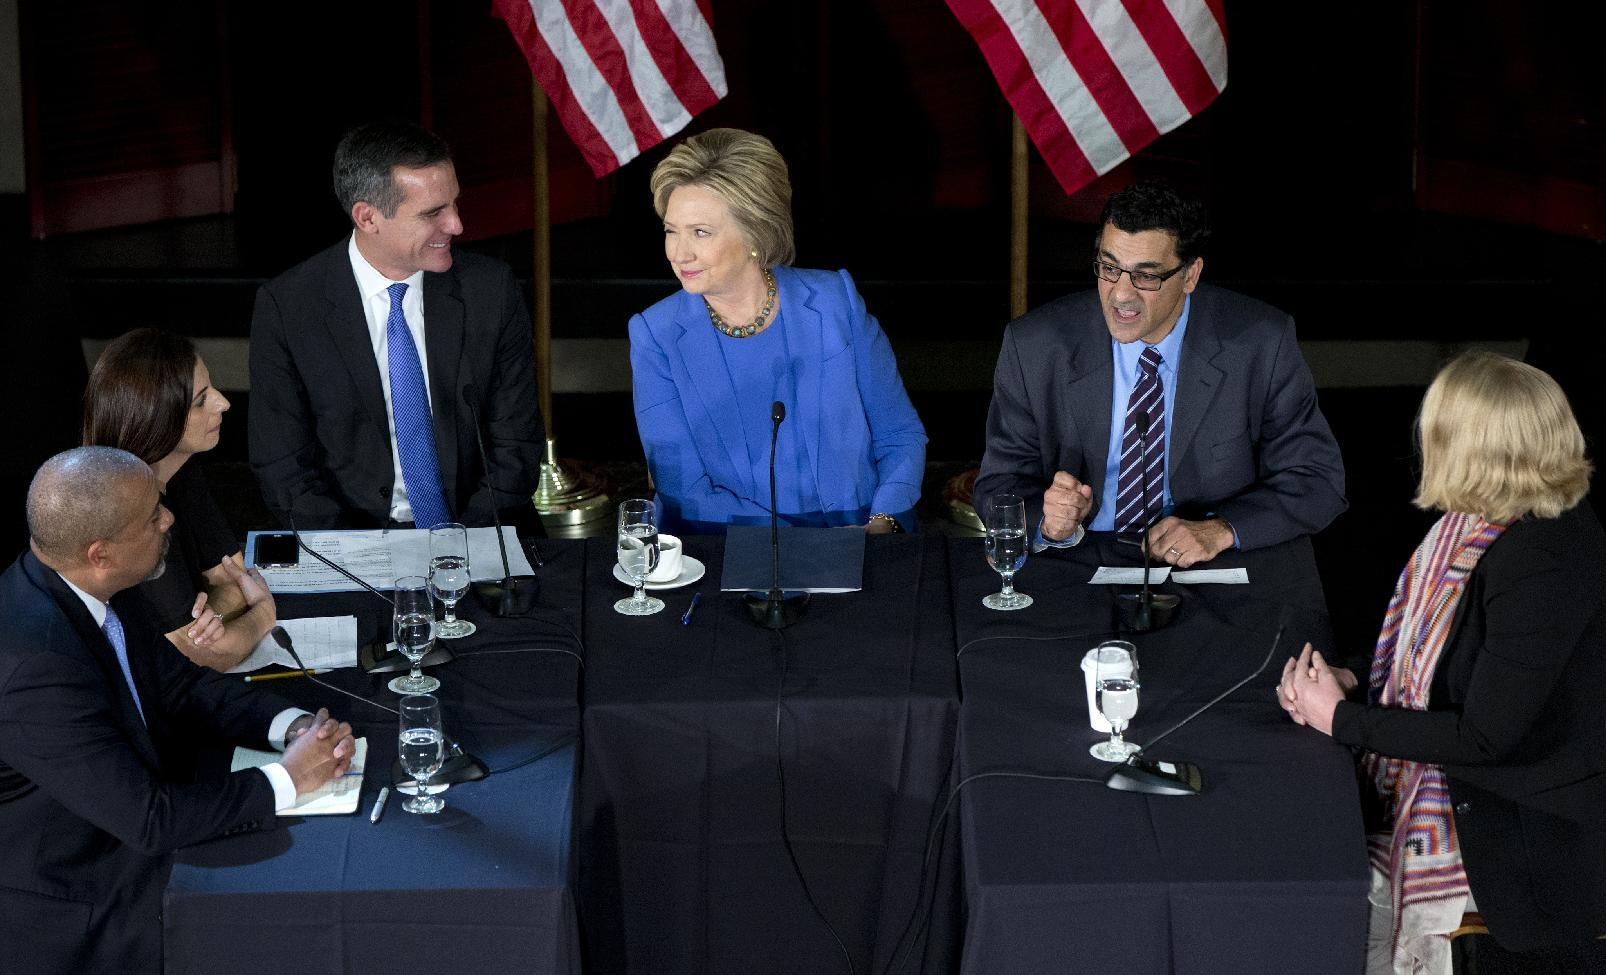 Candidates capitalize on the ever-powerful 'religious vote'